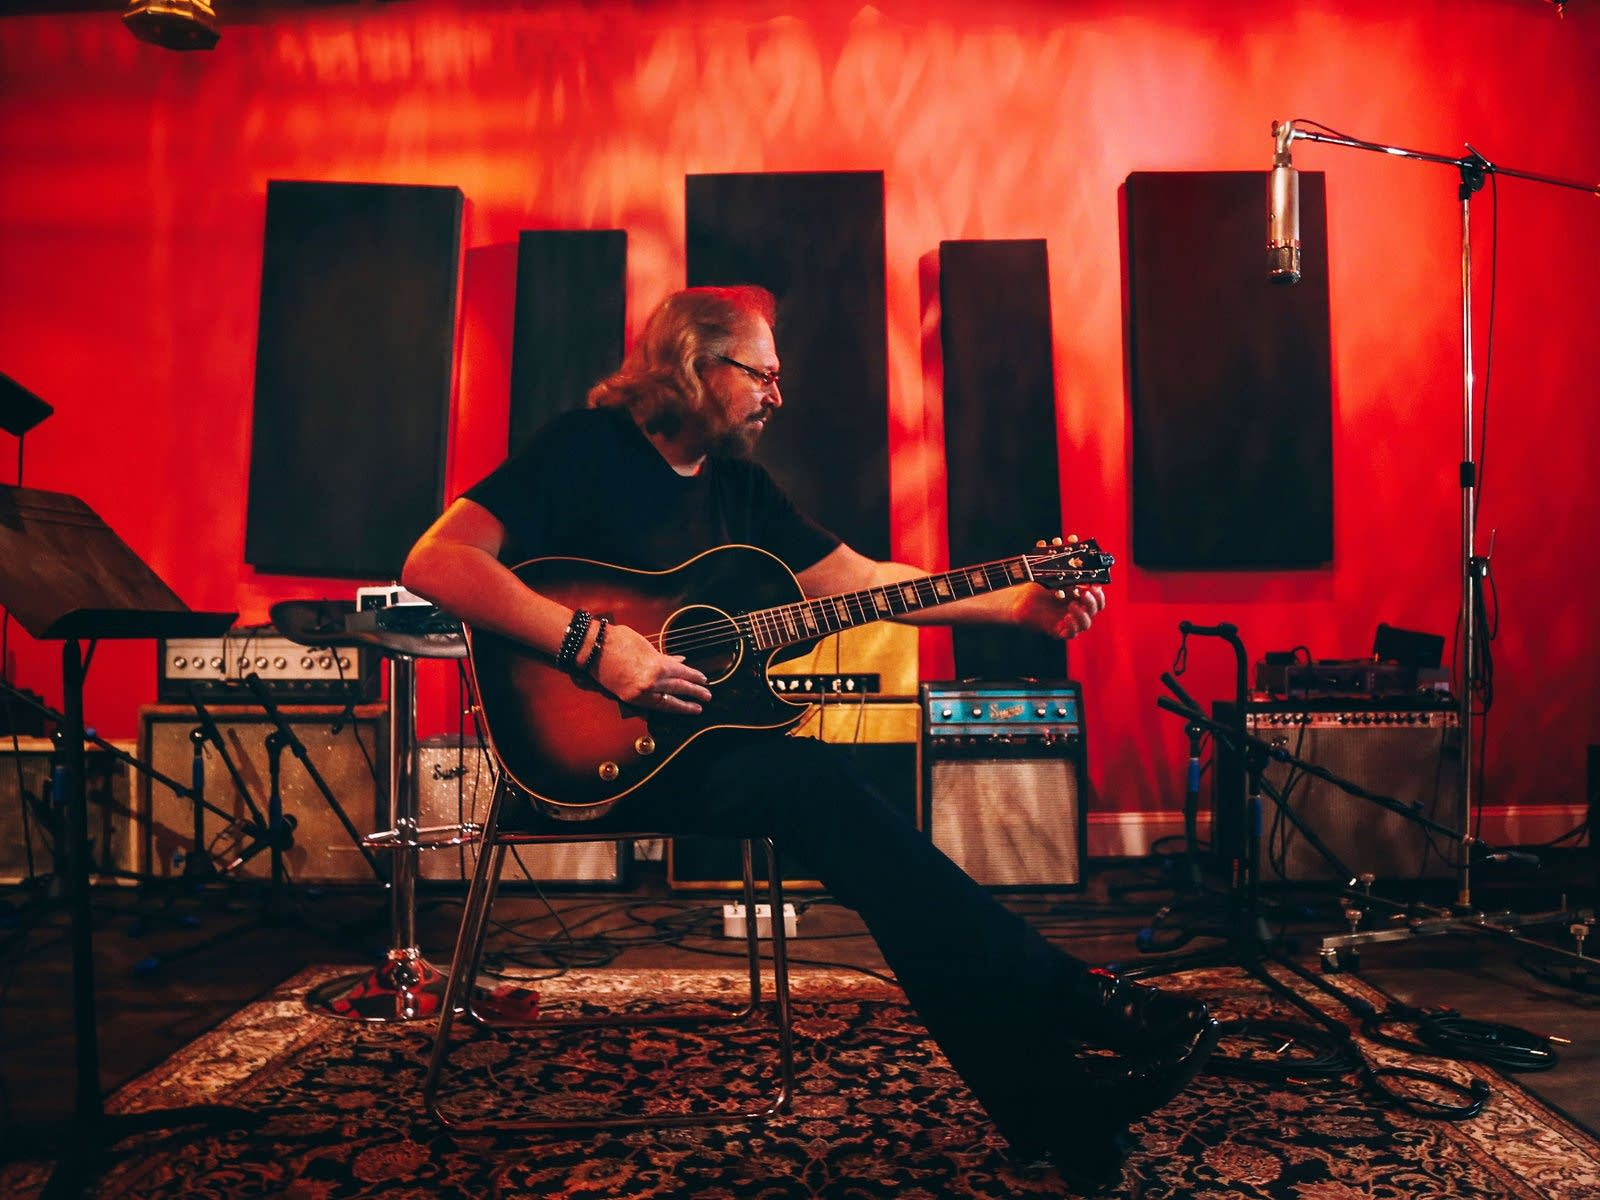 Barry Gibb tunes a guitar in a recording studio